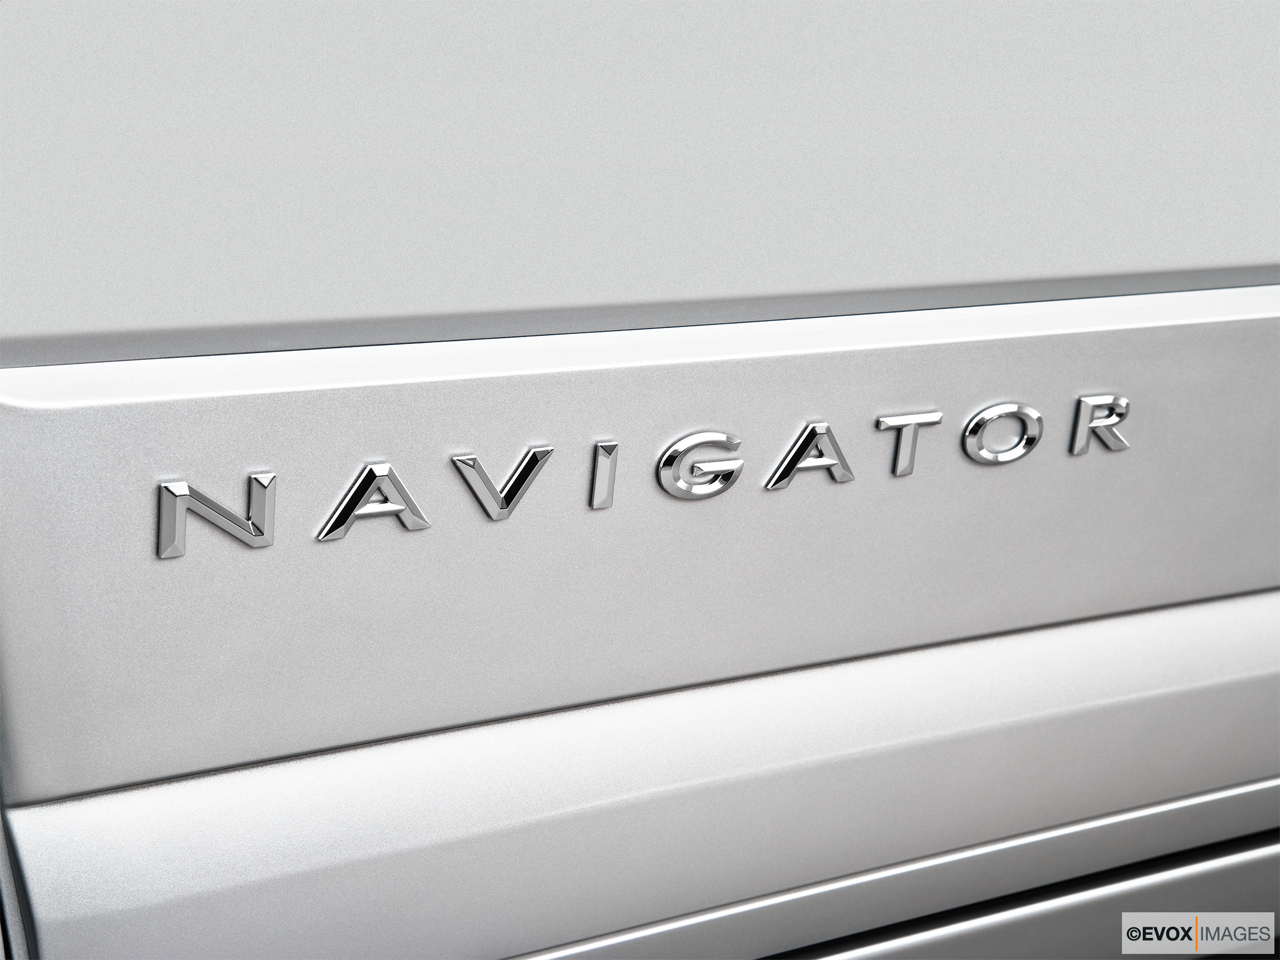 2010 Lincoln Navigator Base Rear model badge/emblem